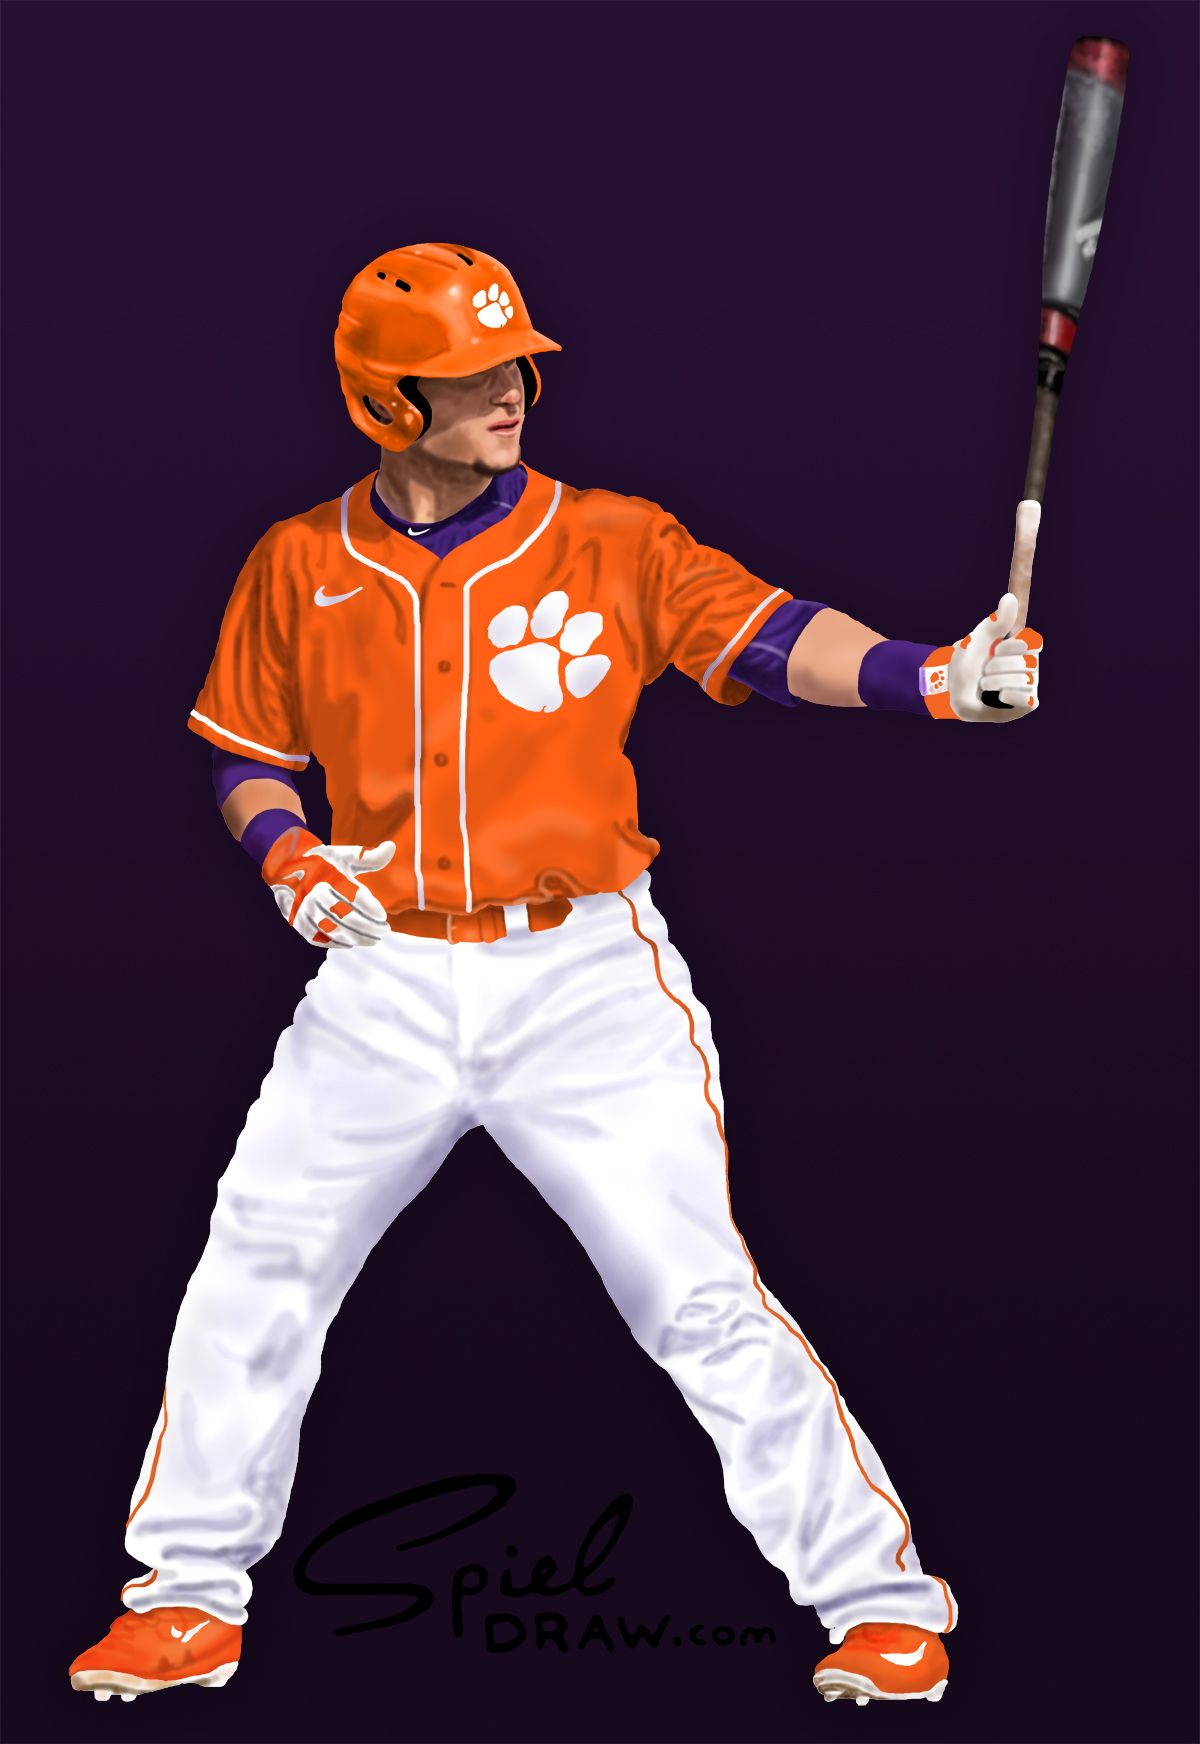 deefac4dc Digital painting of Clemson catcher Chris Okey. Created with paper ...